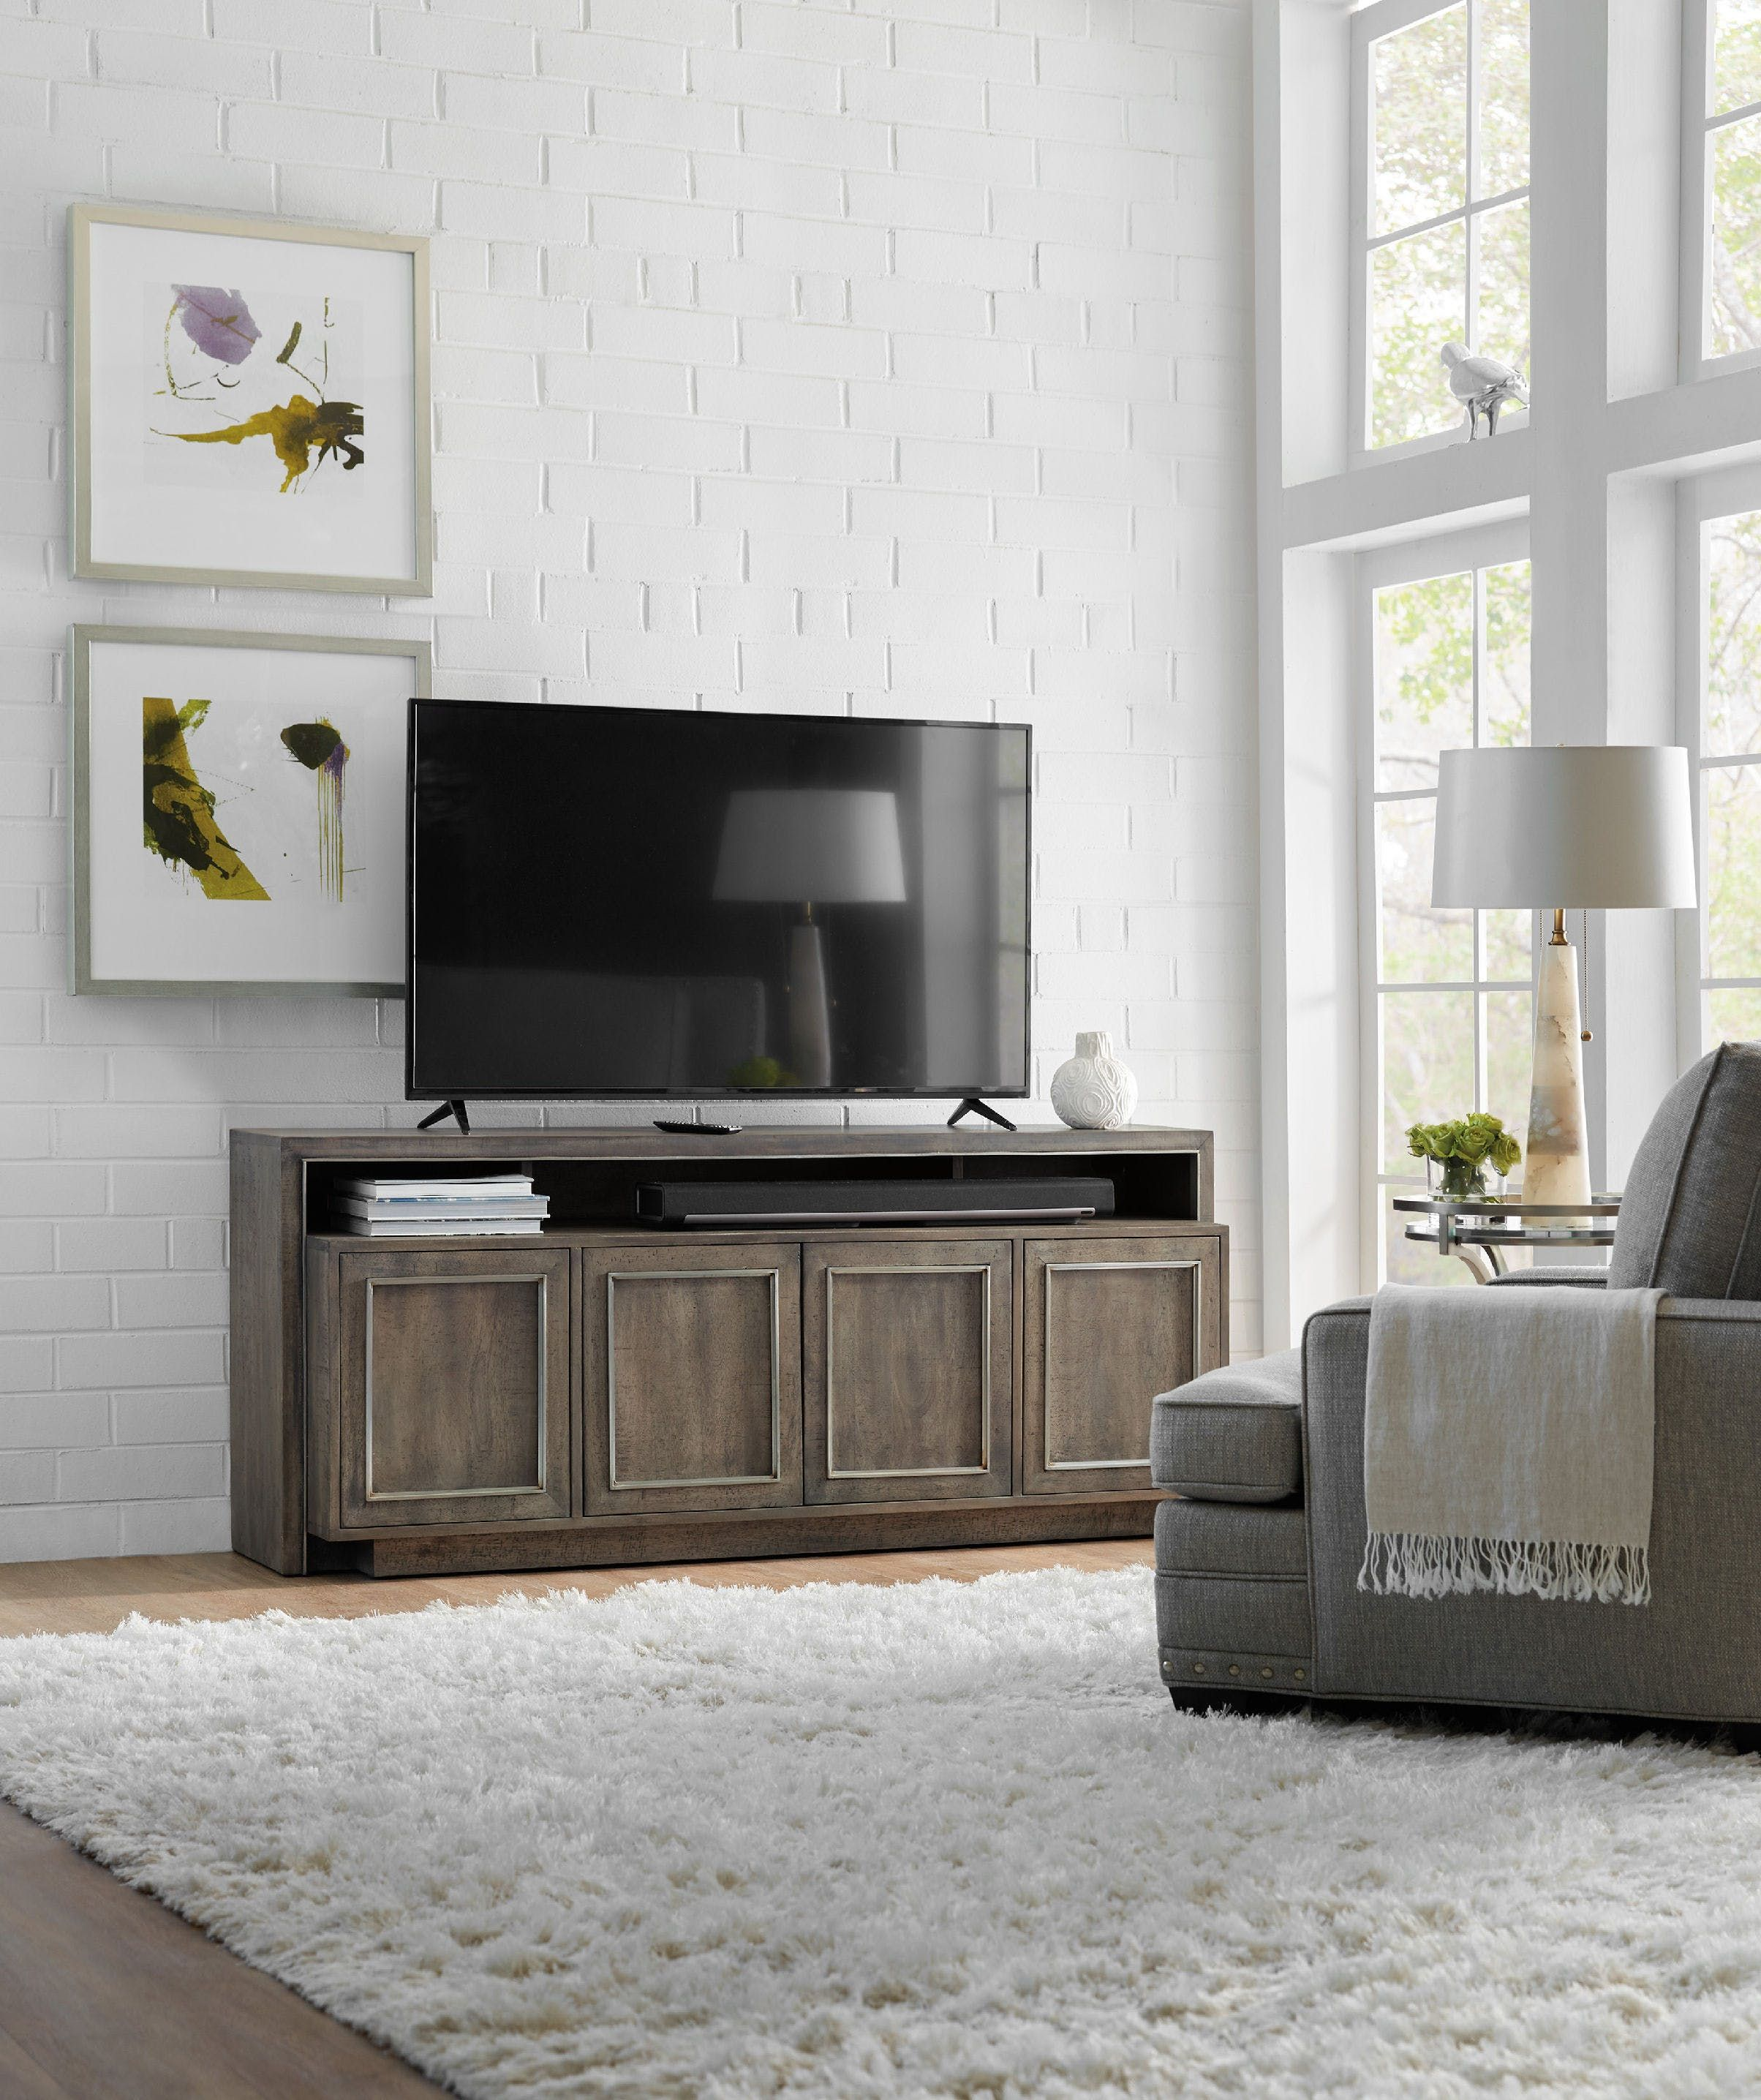 entertainment wall views treviso group home furniture more hooker cupboard